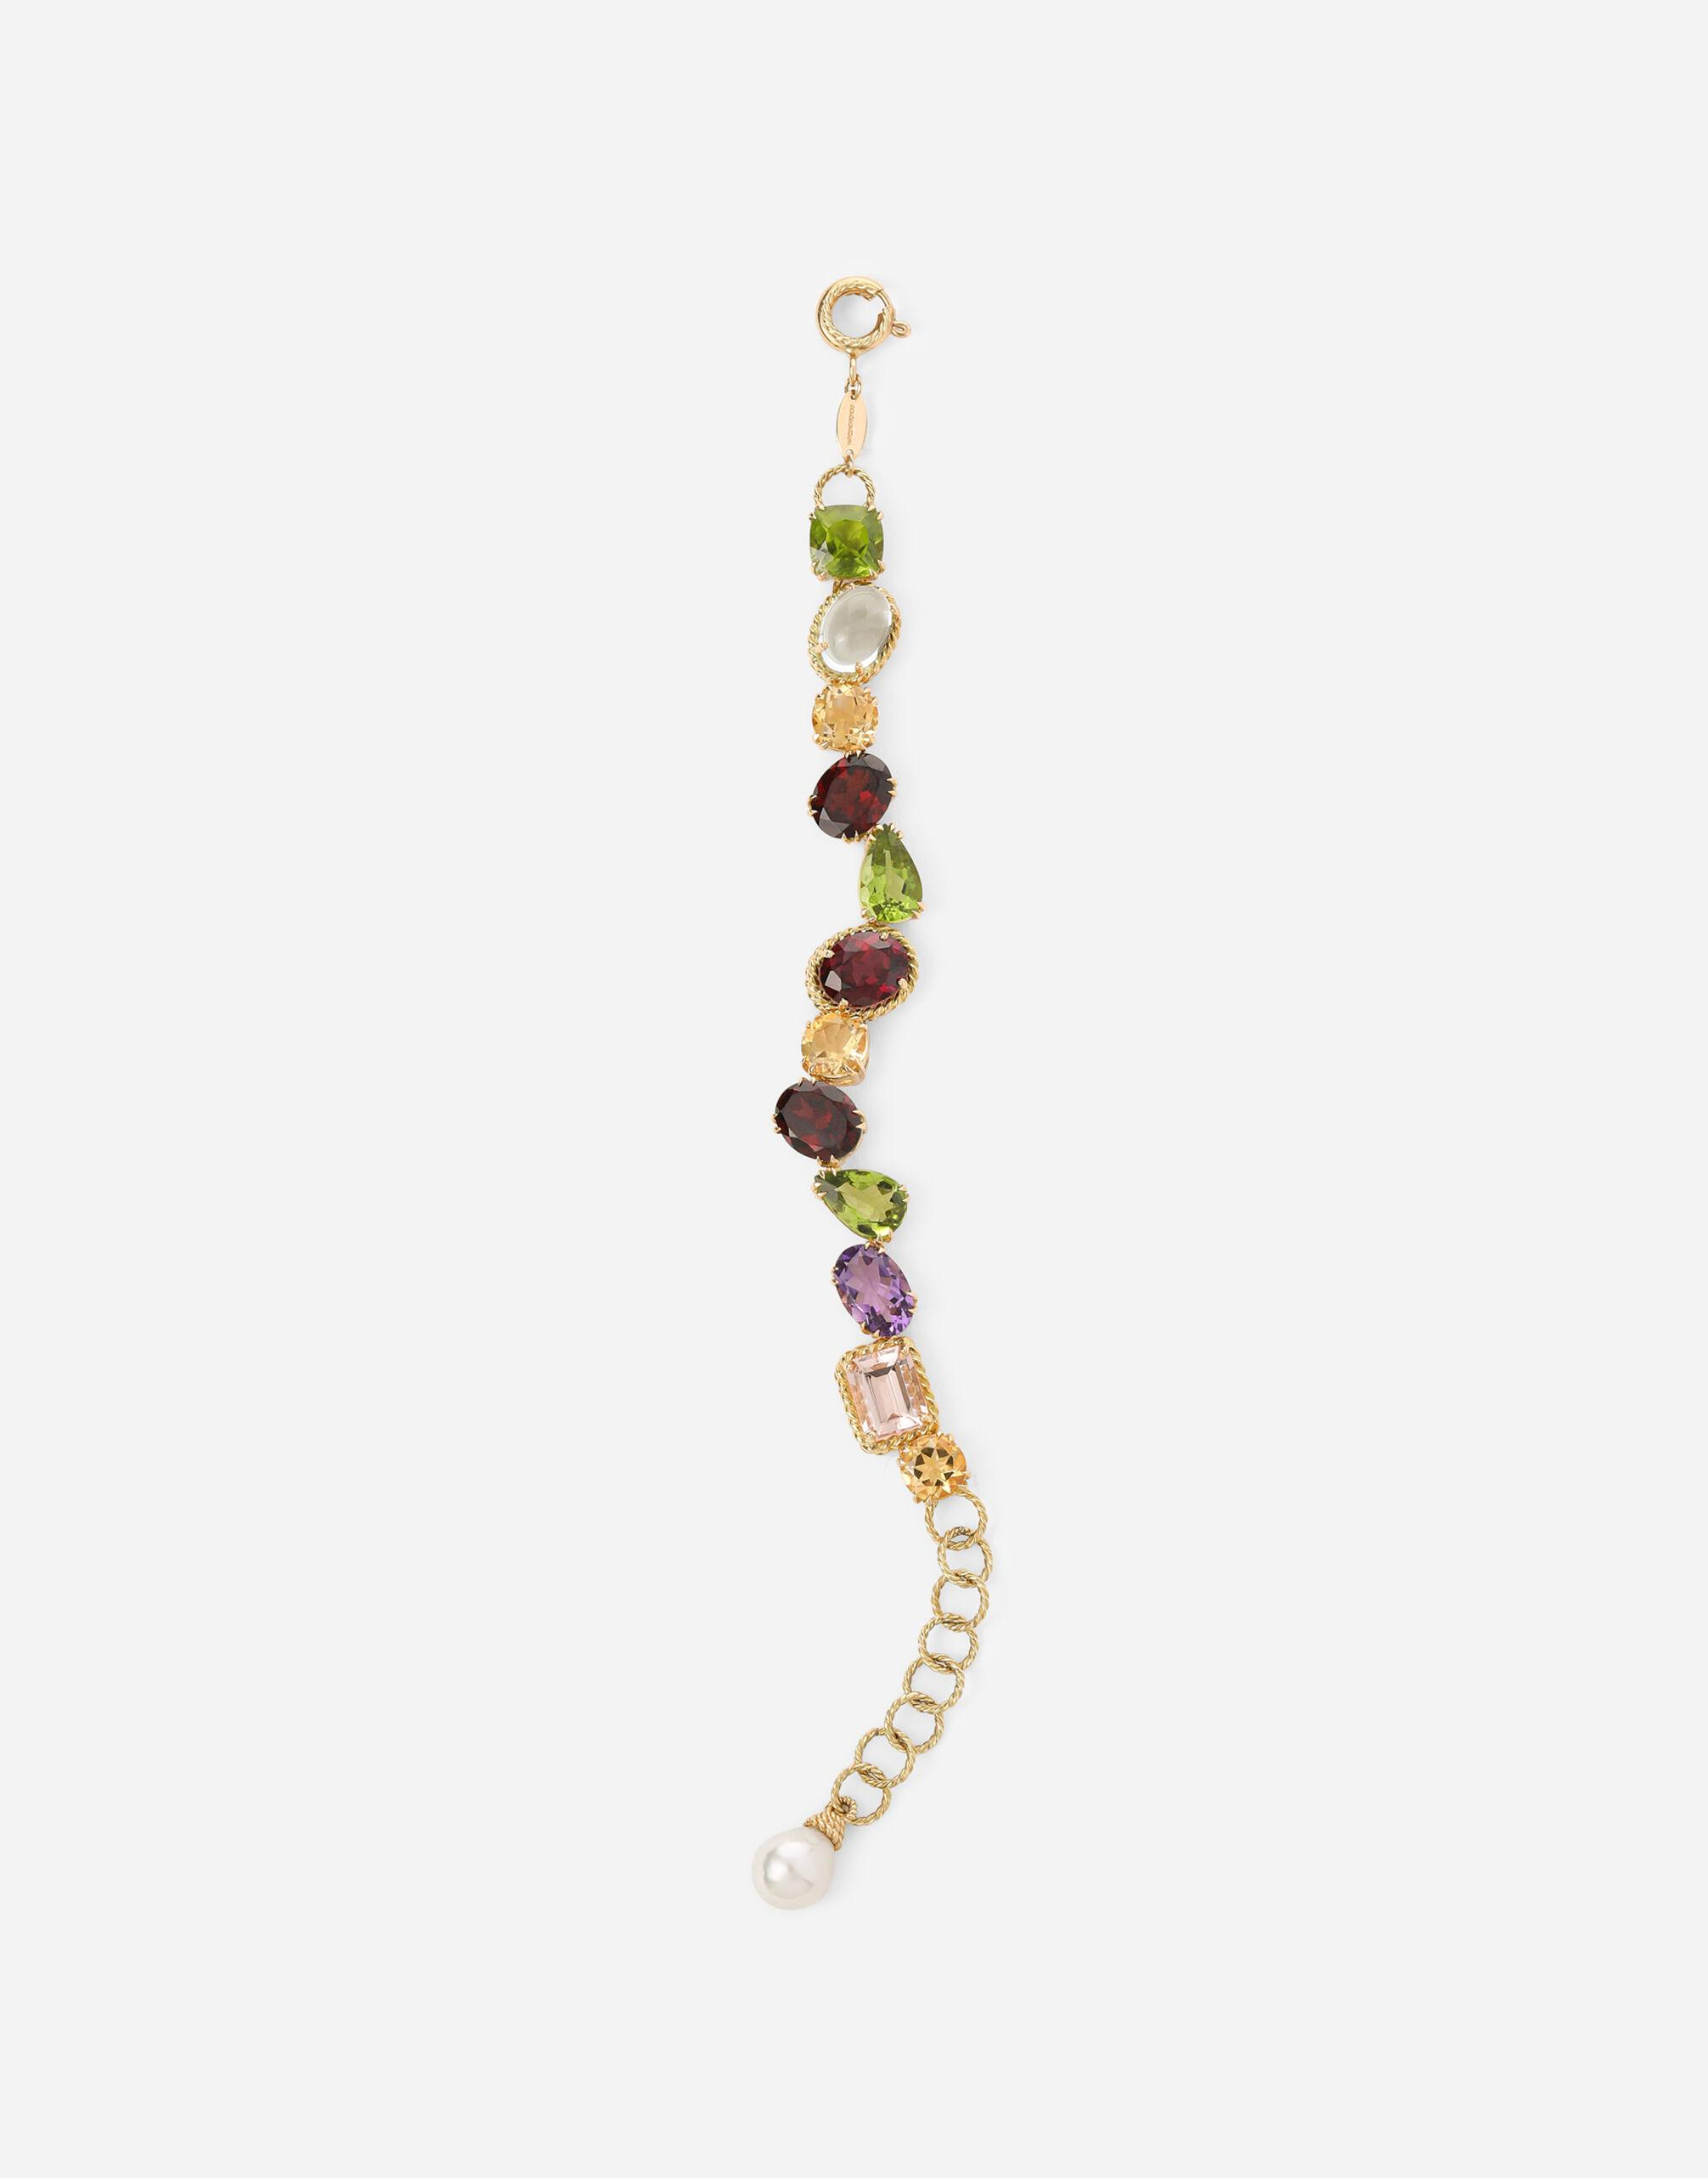 Anna bracelet in yellow 18kt gold with different multicolour gemstones